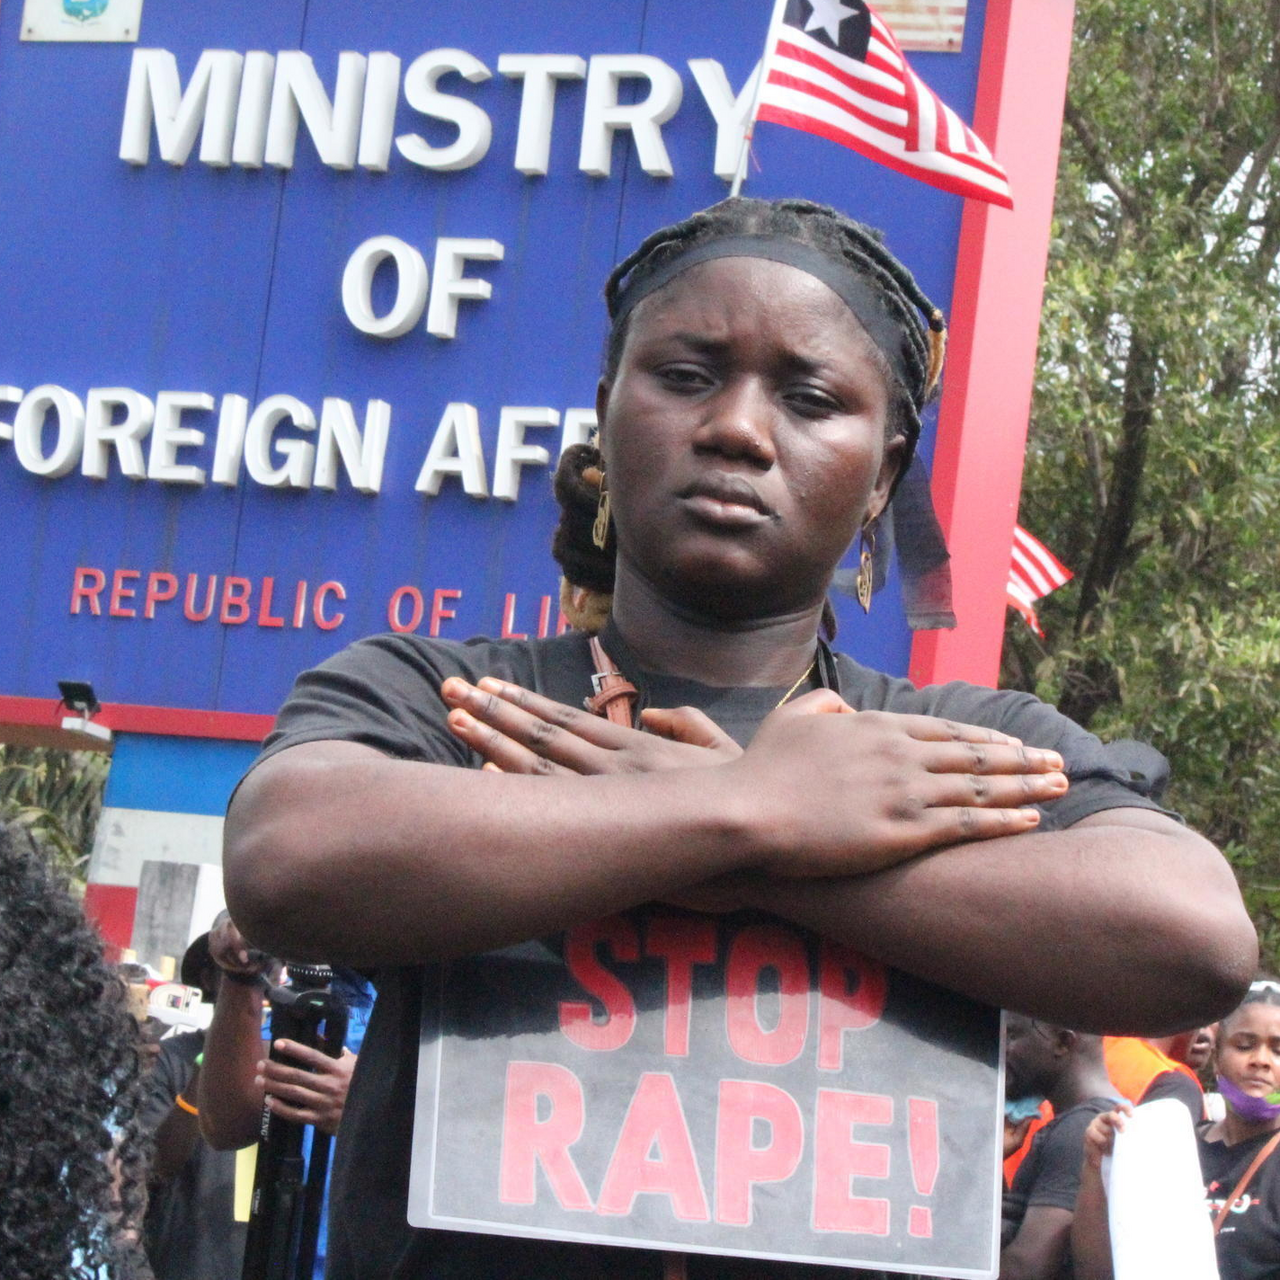 Liberia Police Tear Gas Anti Rape Protesters On Third Day Of Monrovia March